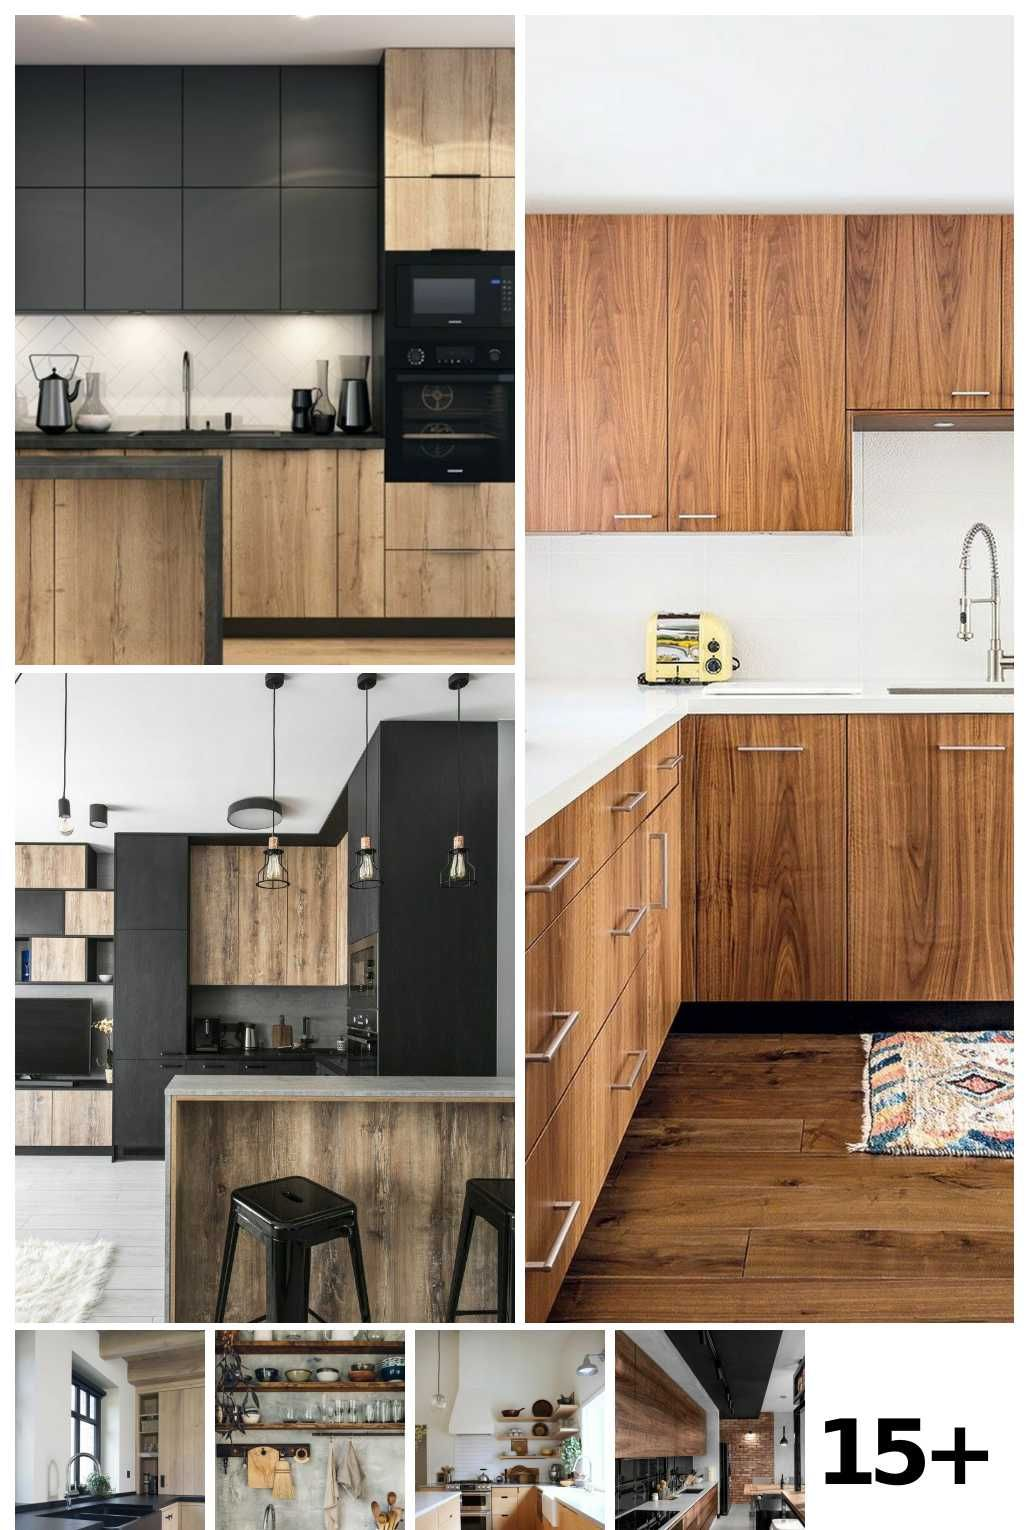 Trending Blonde Wood And Mixed Woods In 2020 Modern Kitchen Design Building A Kitchen Kitchen Design